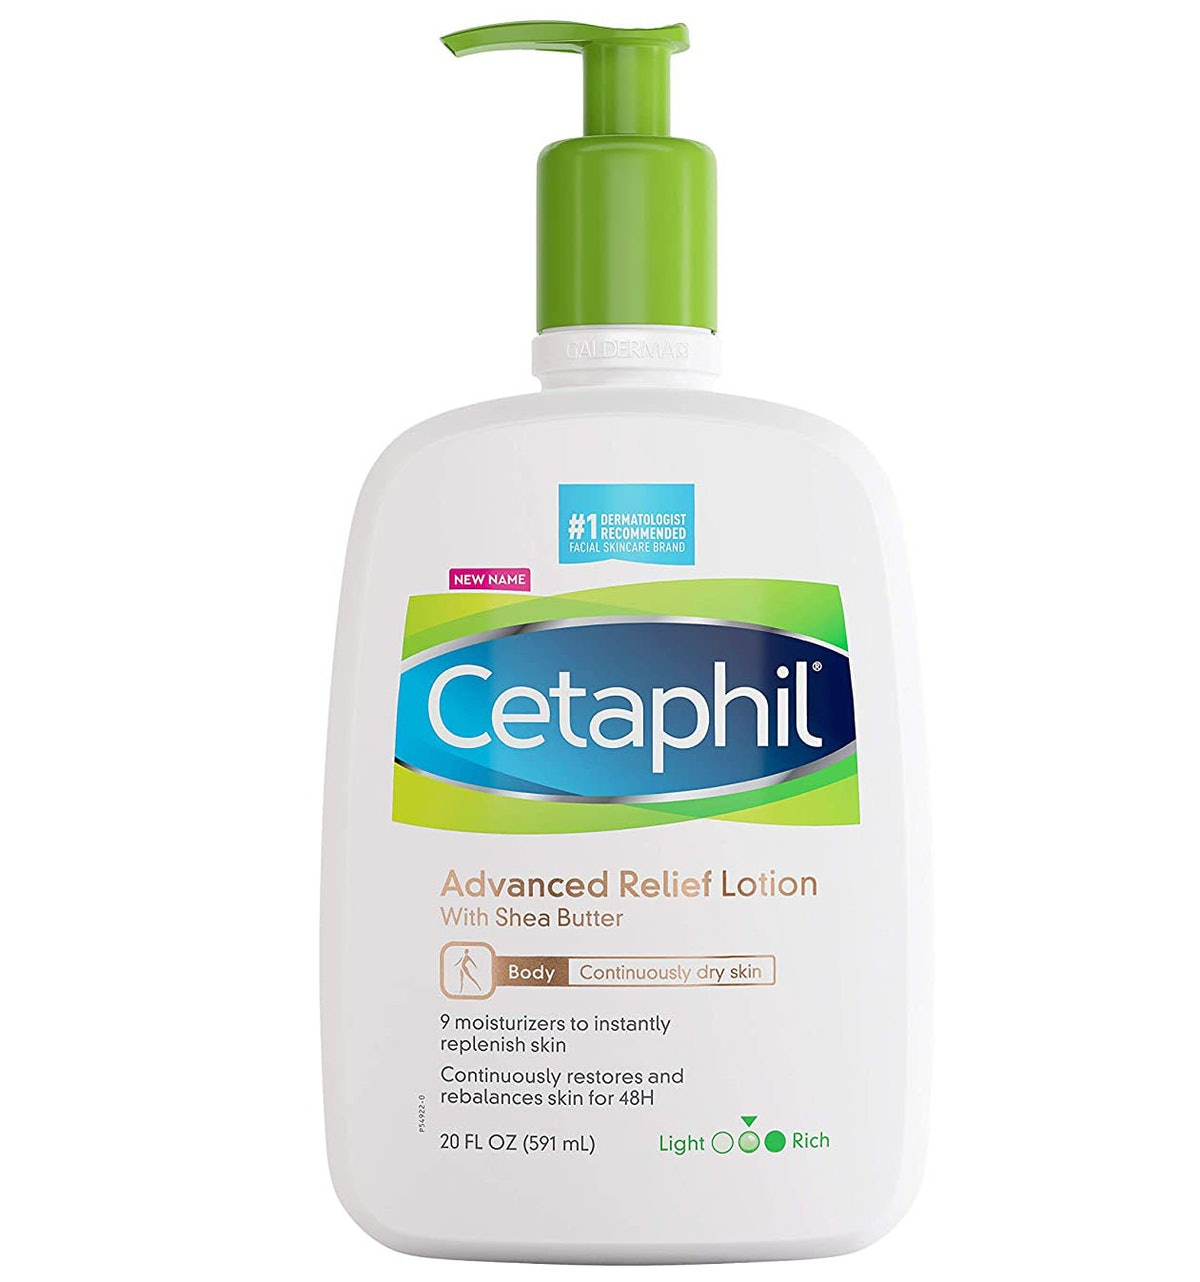 Cetaphil Advanced Relief Lotion with Shea Butter